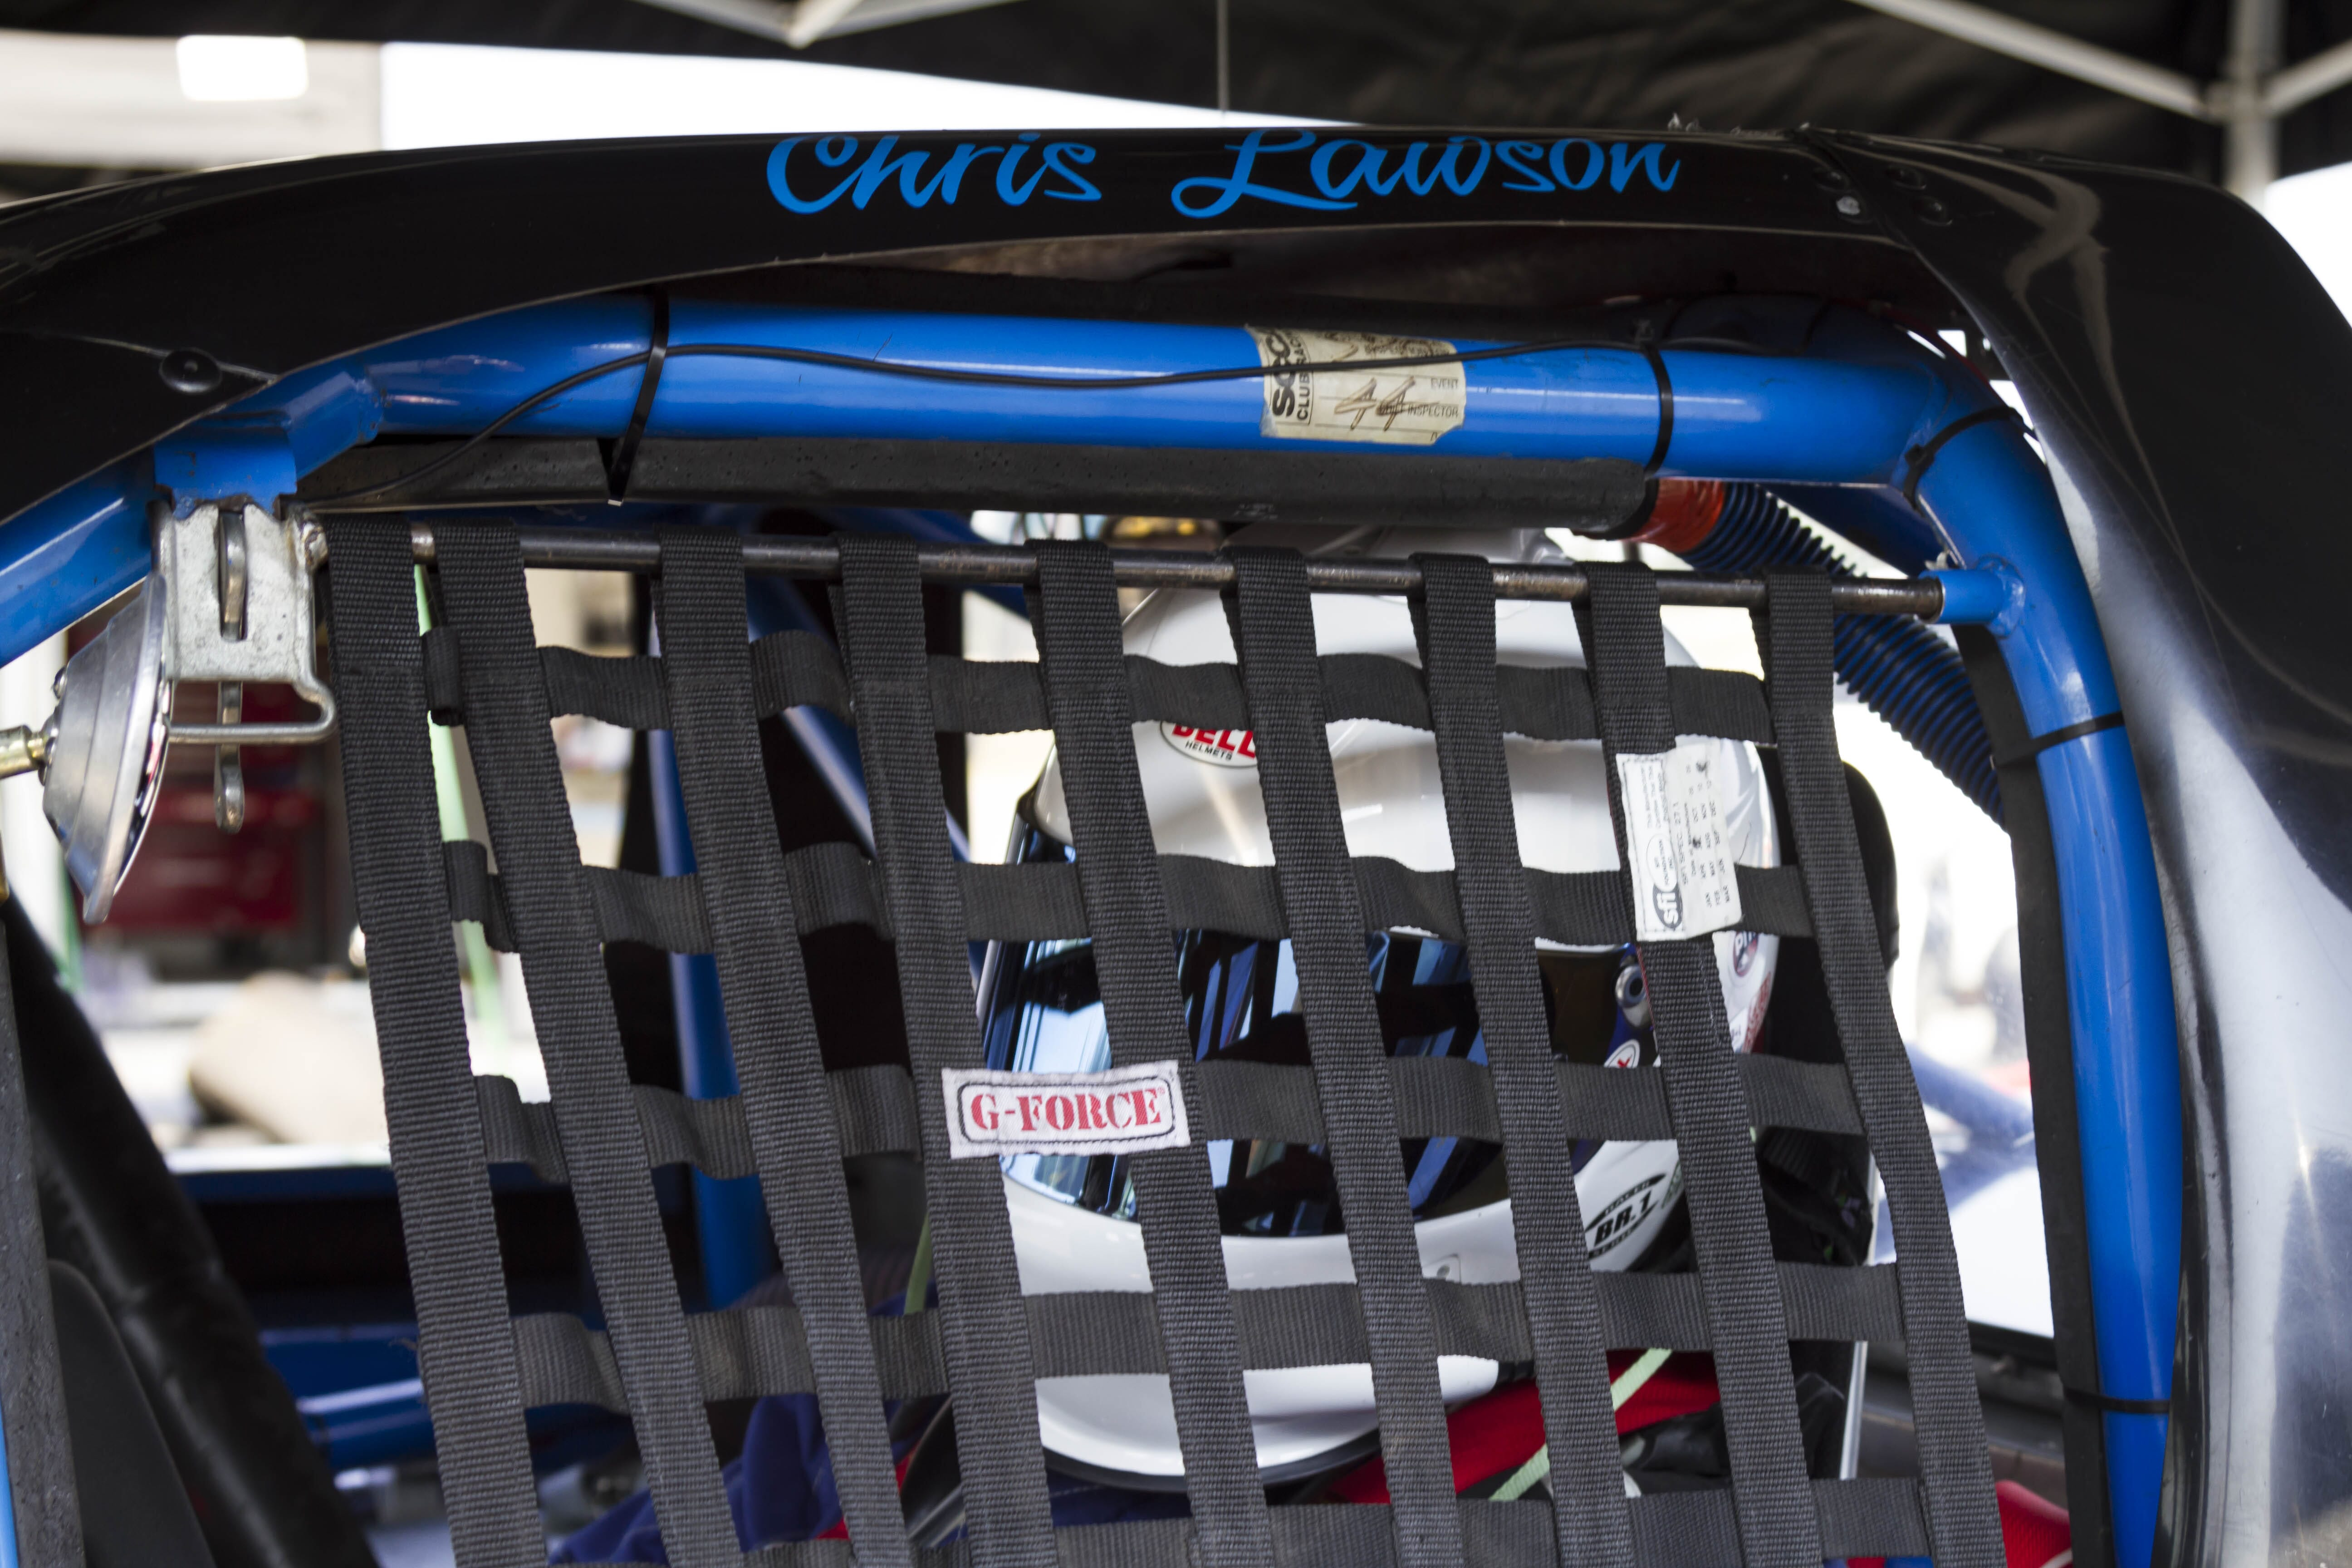 Buckled up, helmet on, cage secured, ready to race!